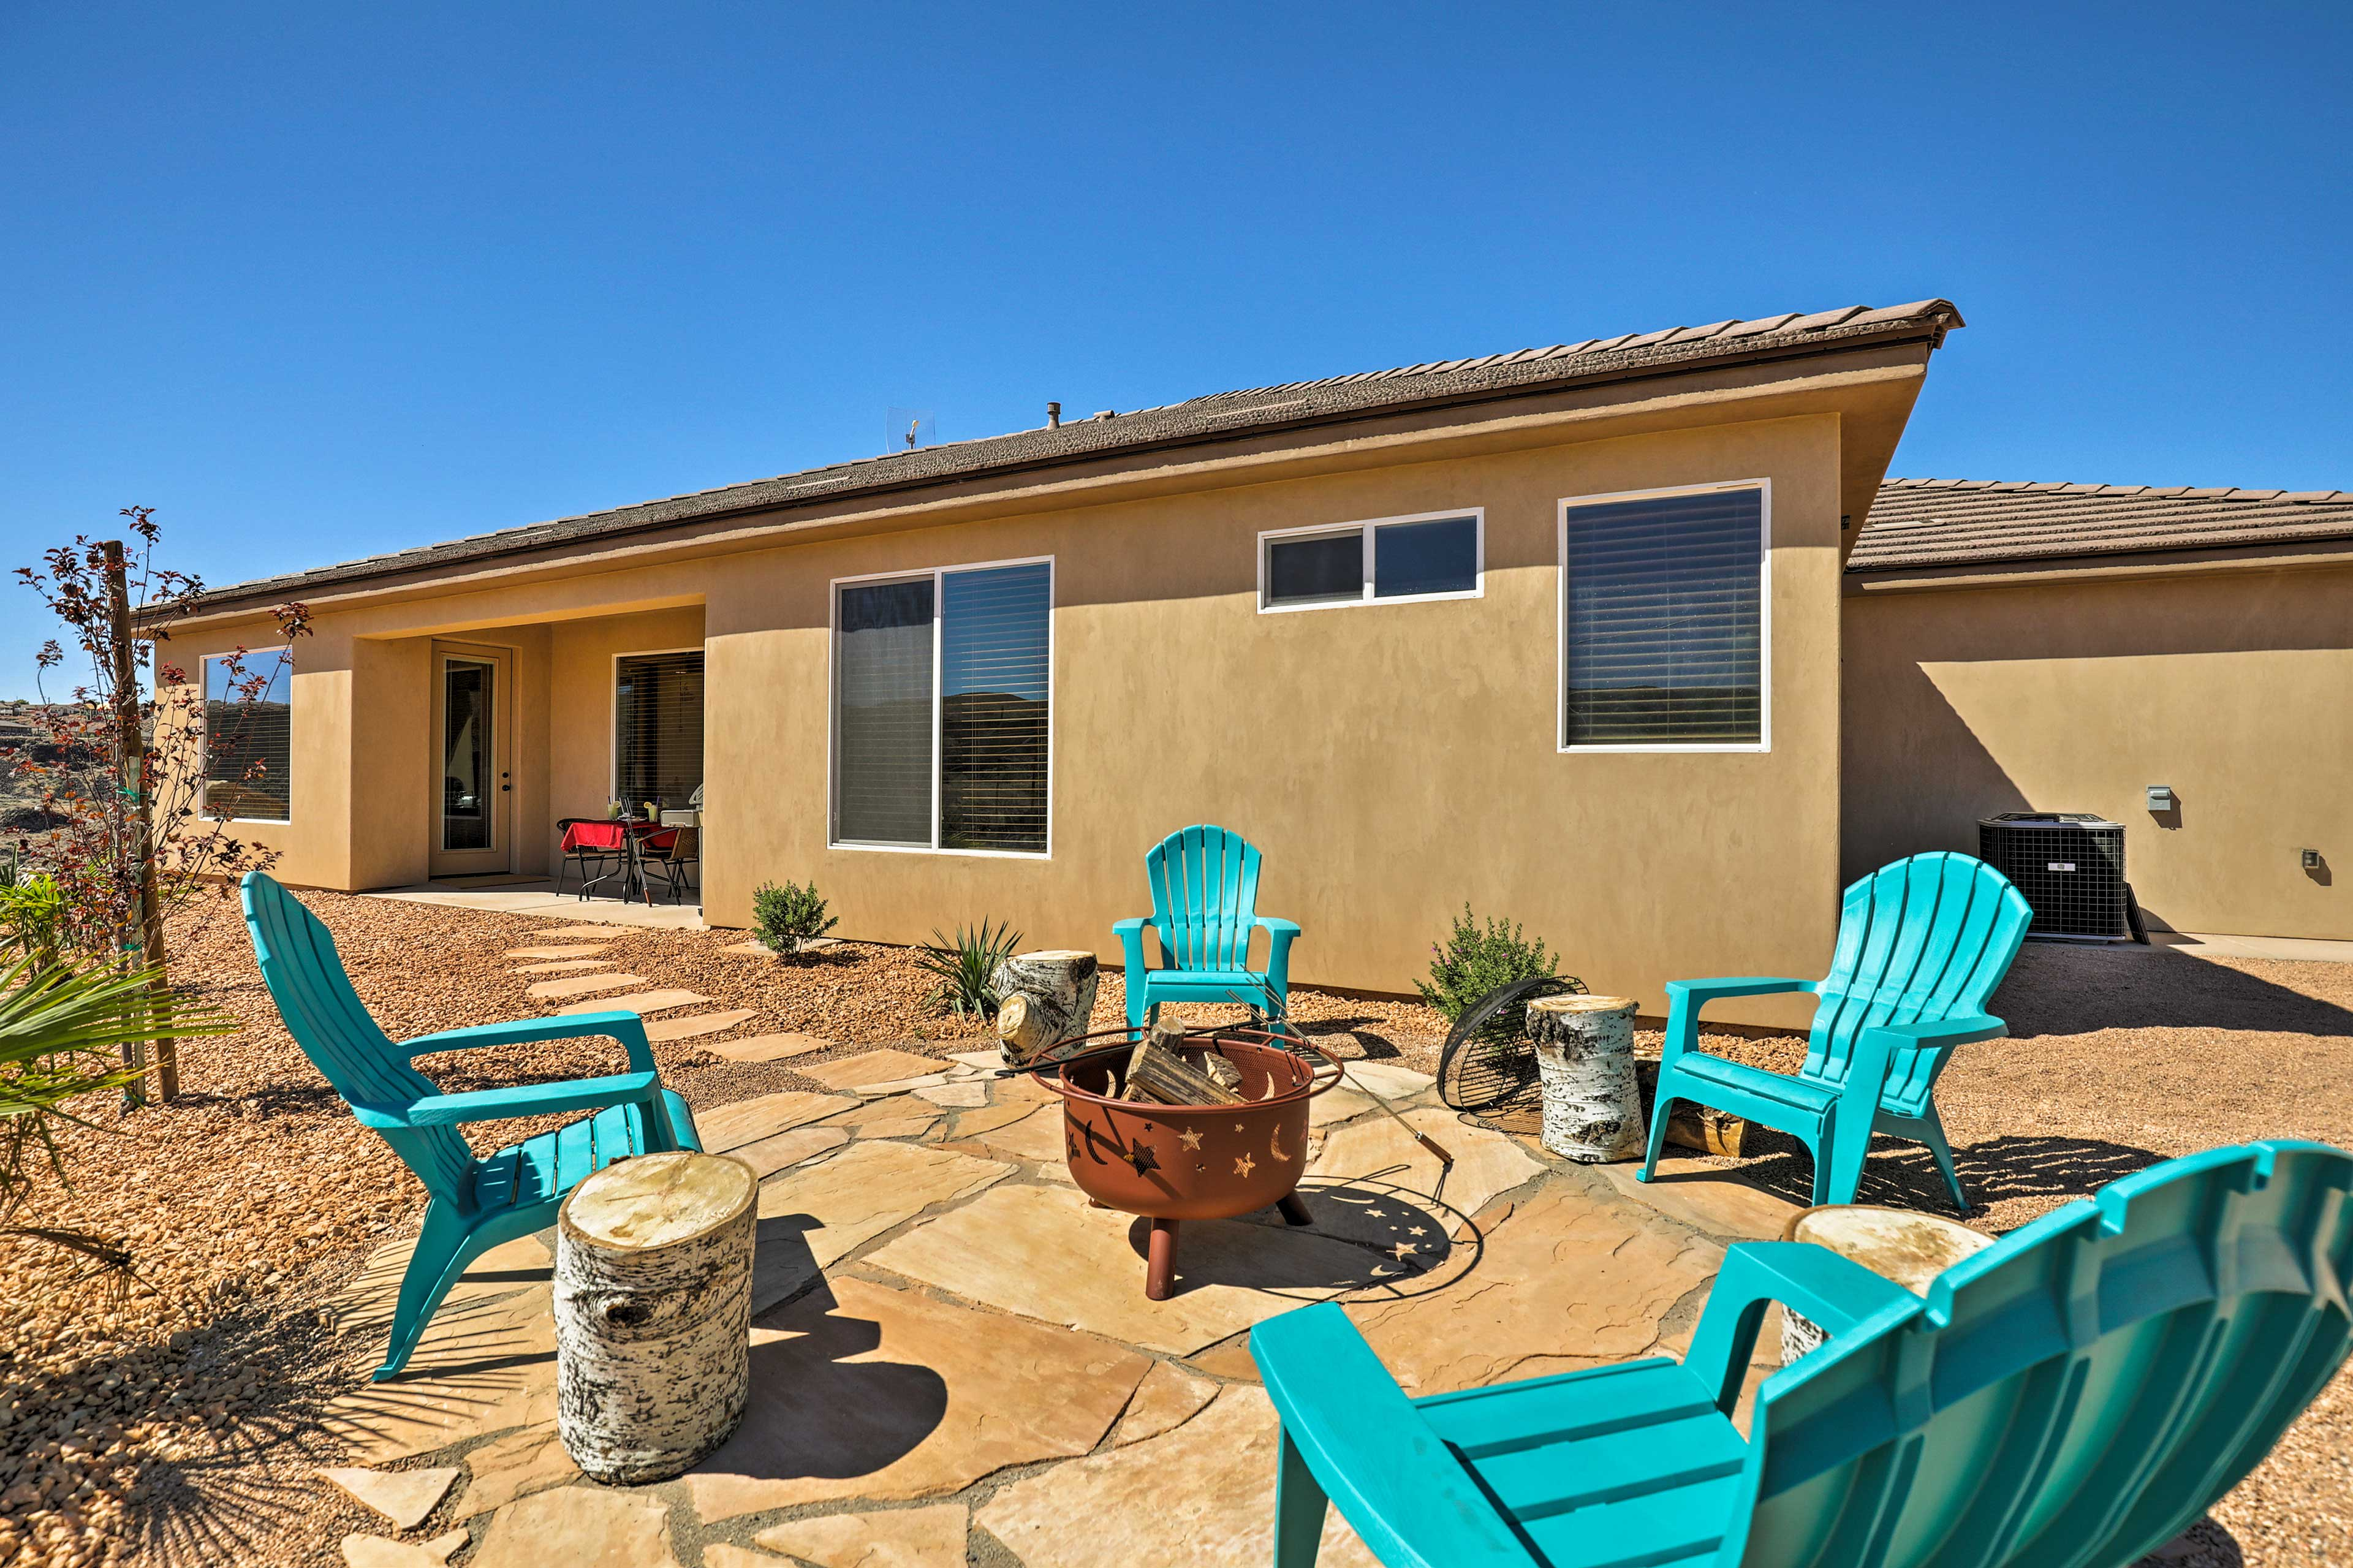 The property has a fire pit that overlooks the beautiful desert landscape.